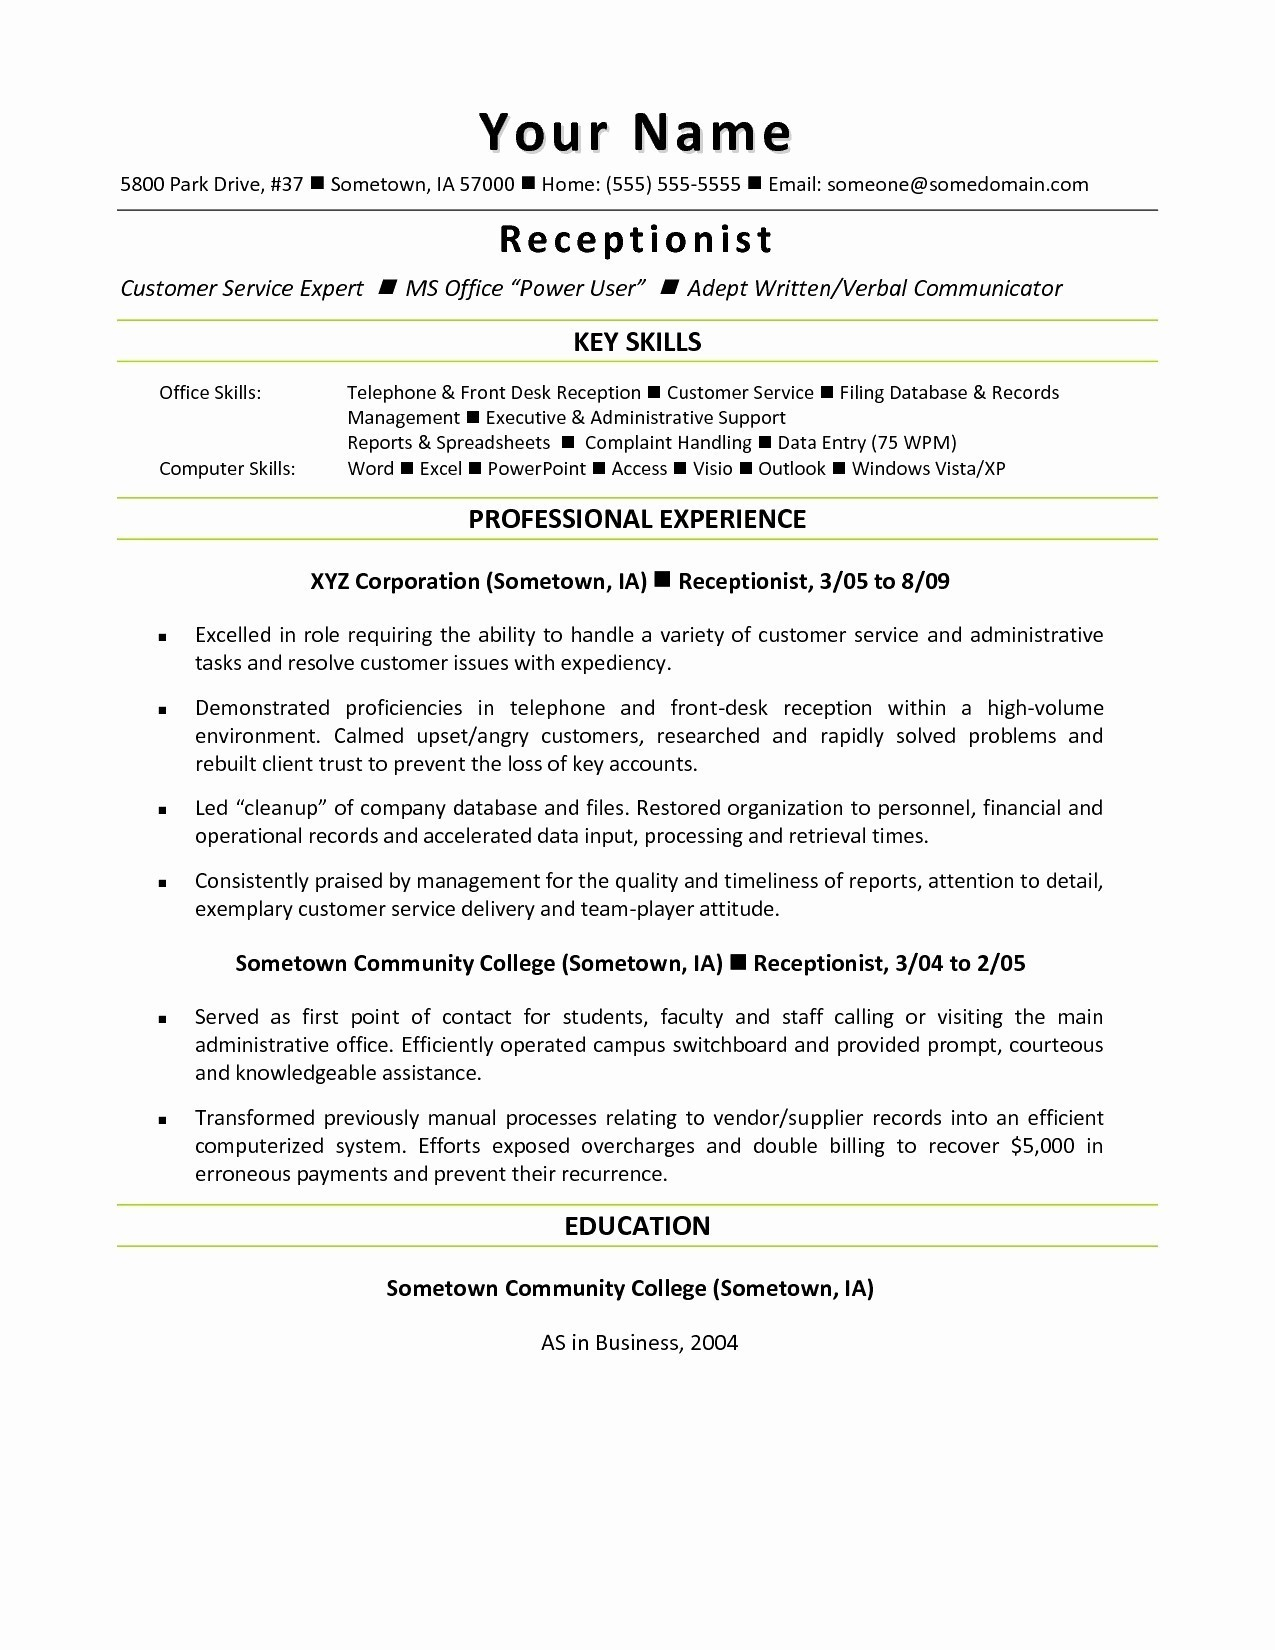 Good Words to Use In A Resume - Resume Buzz Words Elegant Elegant Good Nursing Resume Elegant Nurse